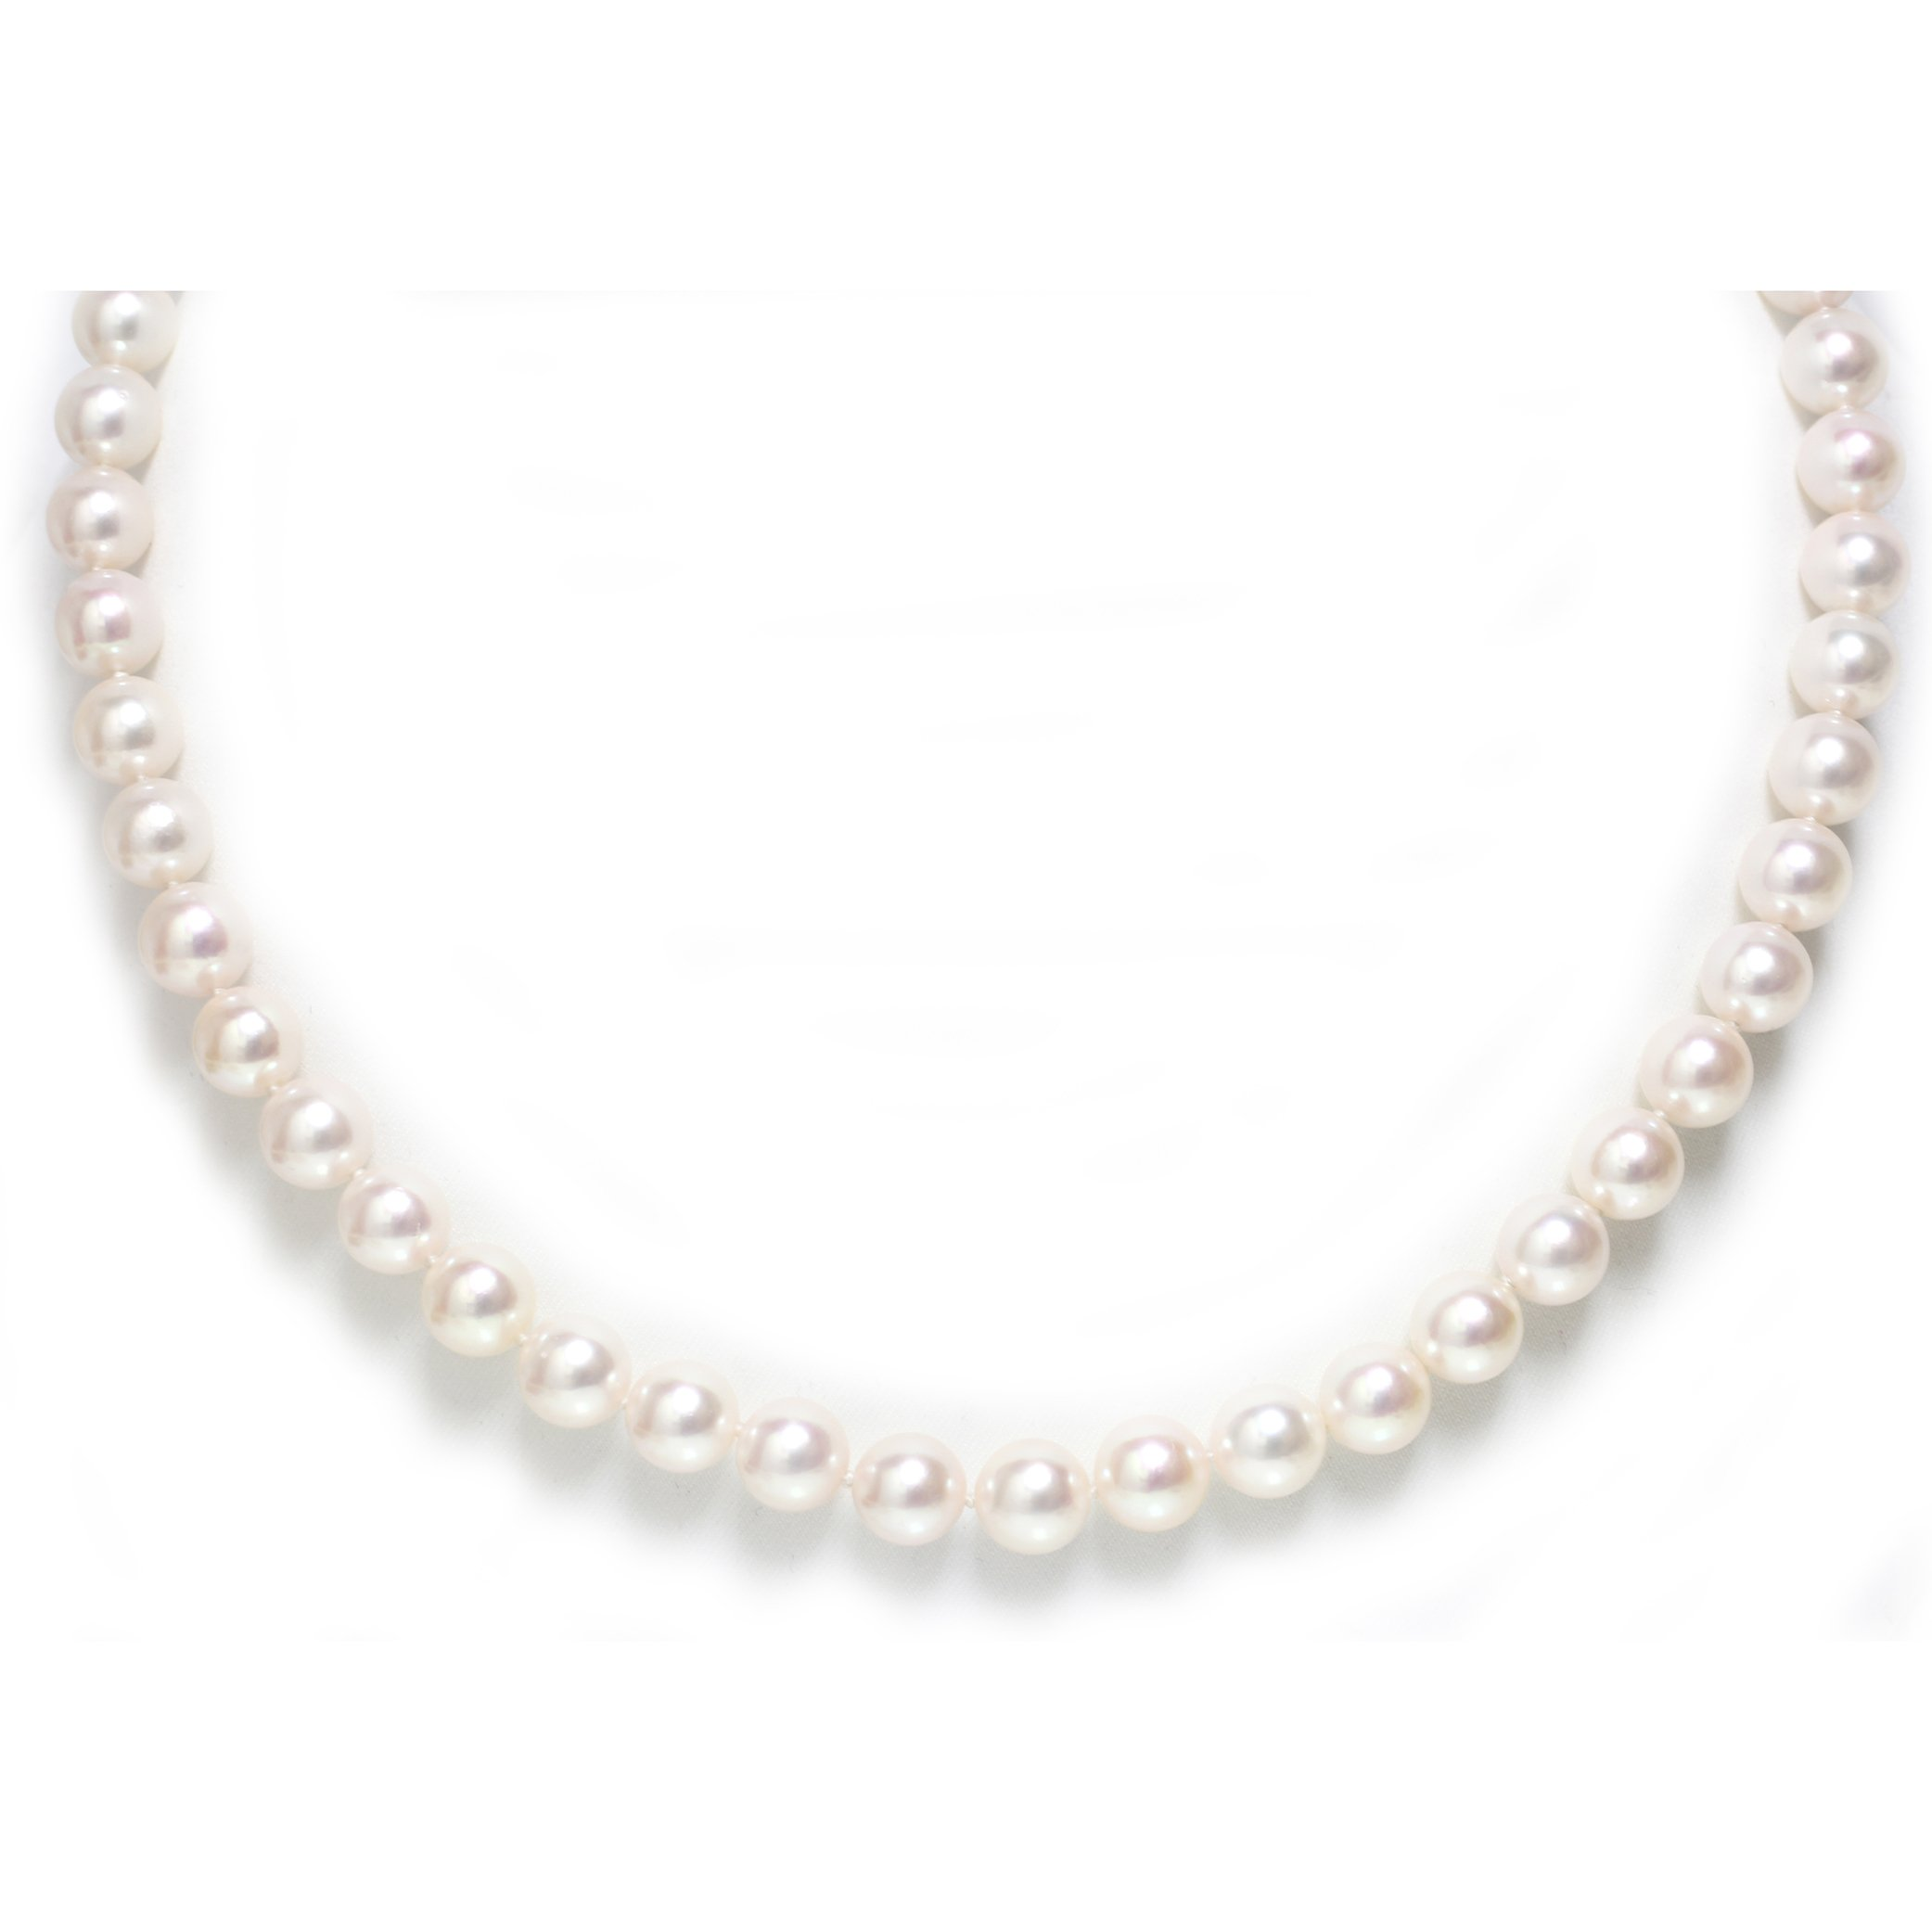 14k Gold Akoya Cultured Pearl Necklace 7 - 6.5 MM AAA Quality 18'' Princess Length